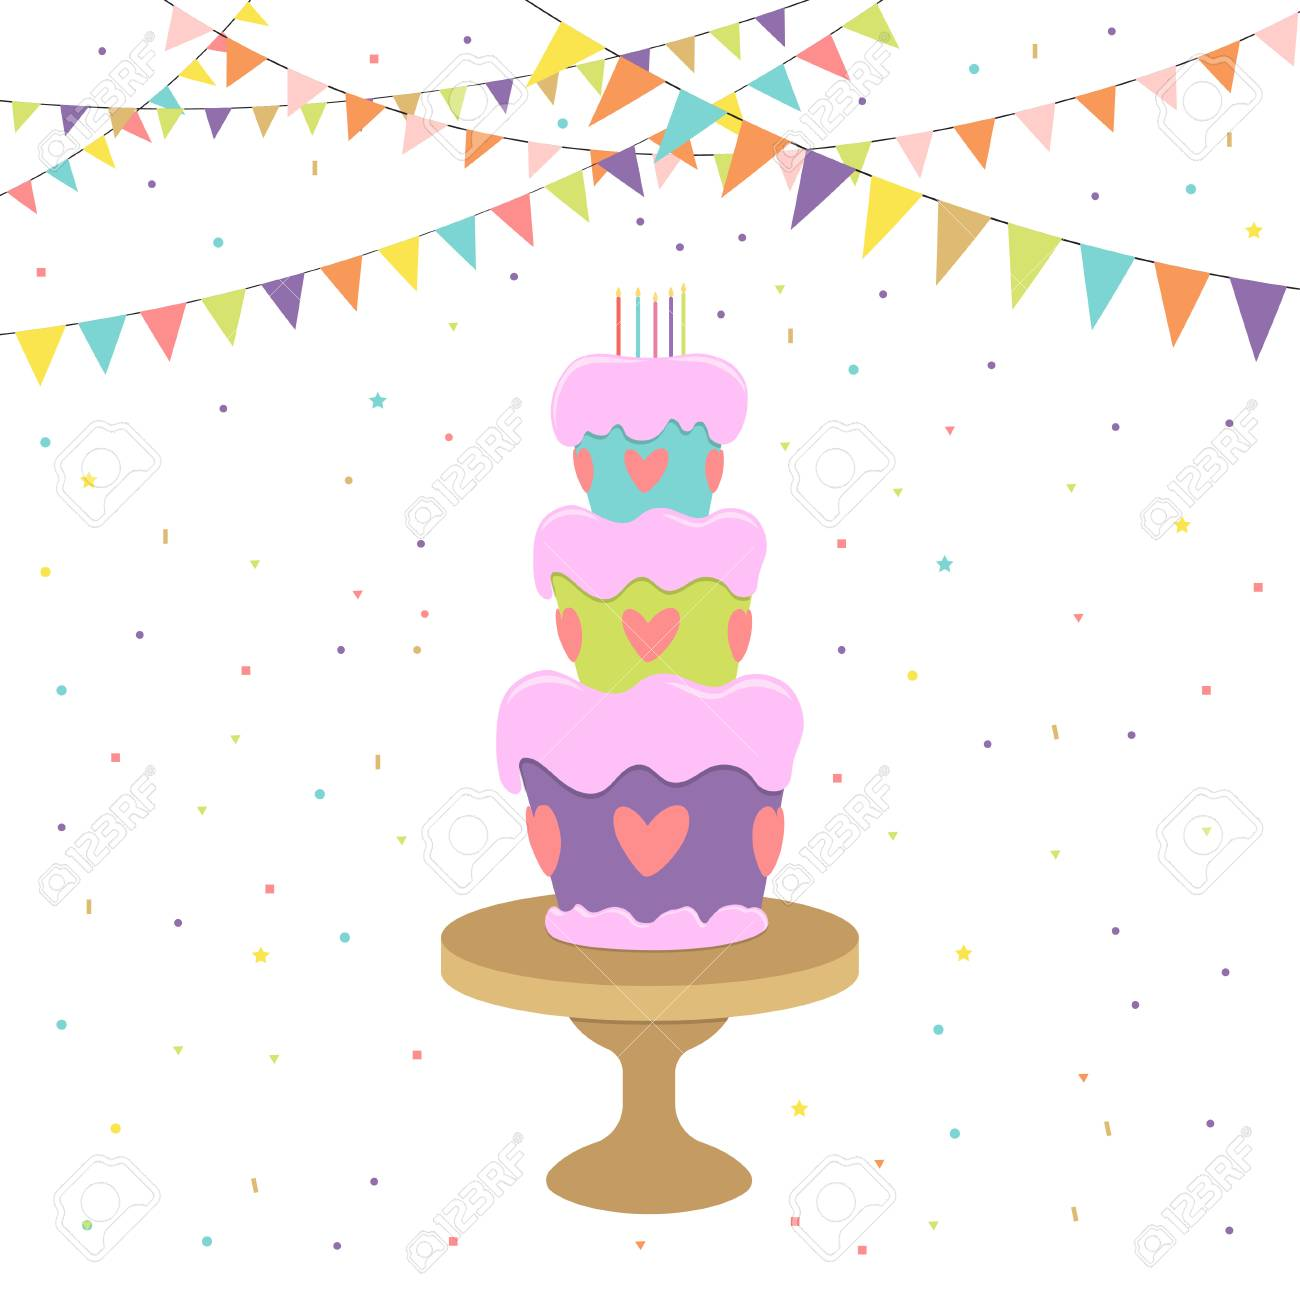 Greeting and invitation card with birthday cake on stand candles greeting and invitation card with birthday cake on stand candles confetti and flags stopboris Gallery